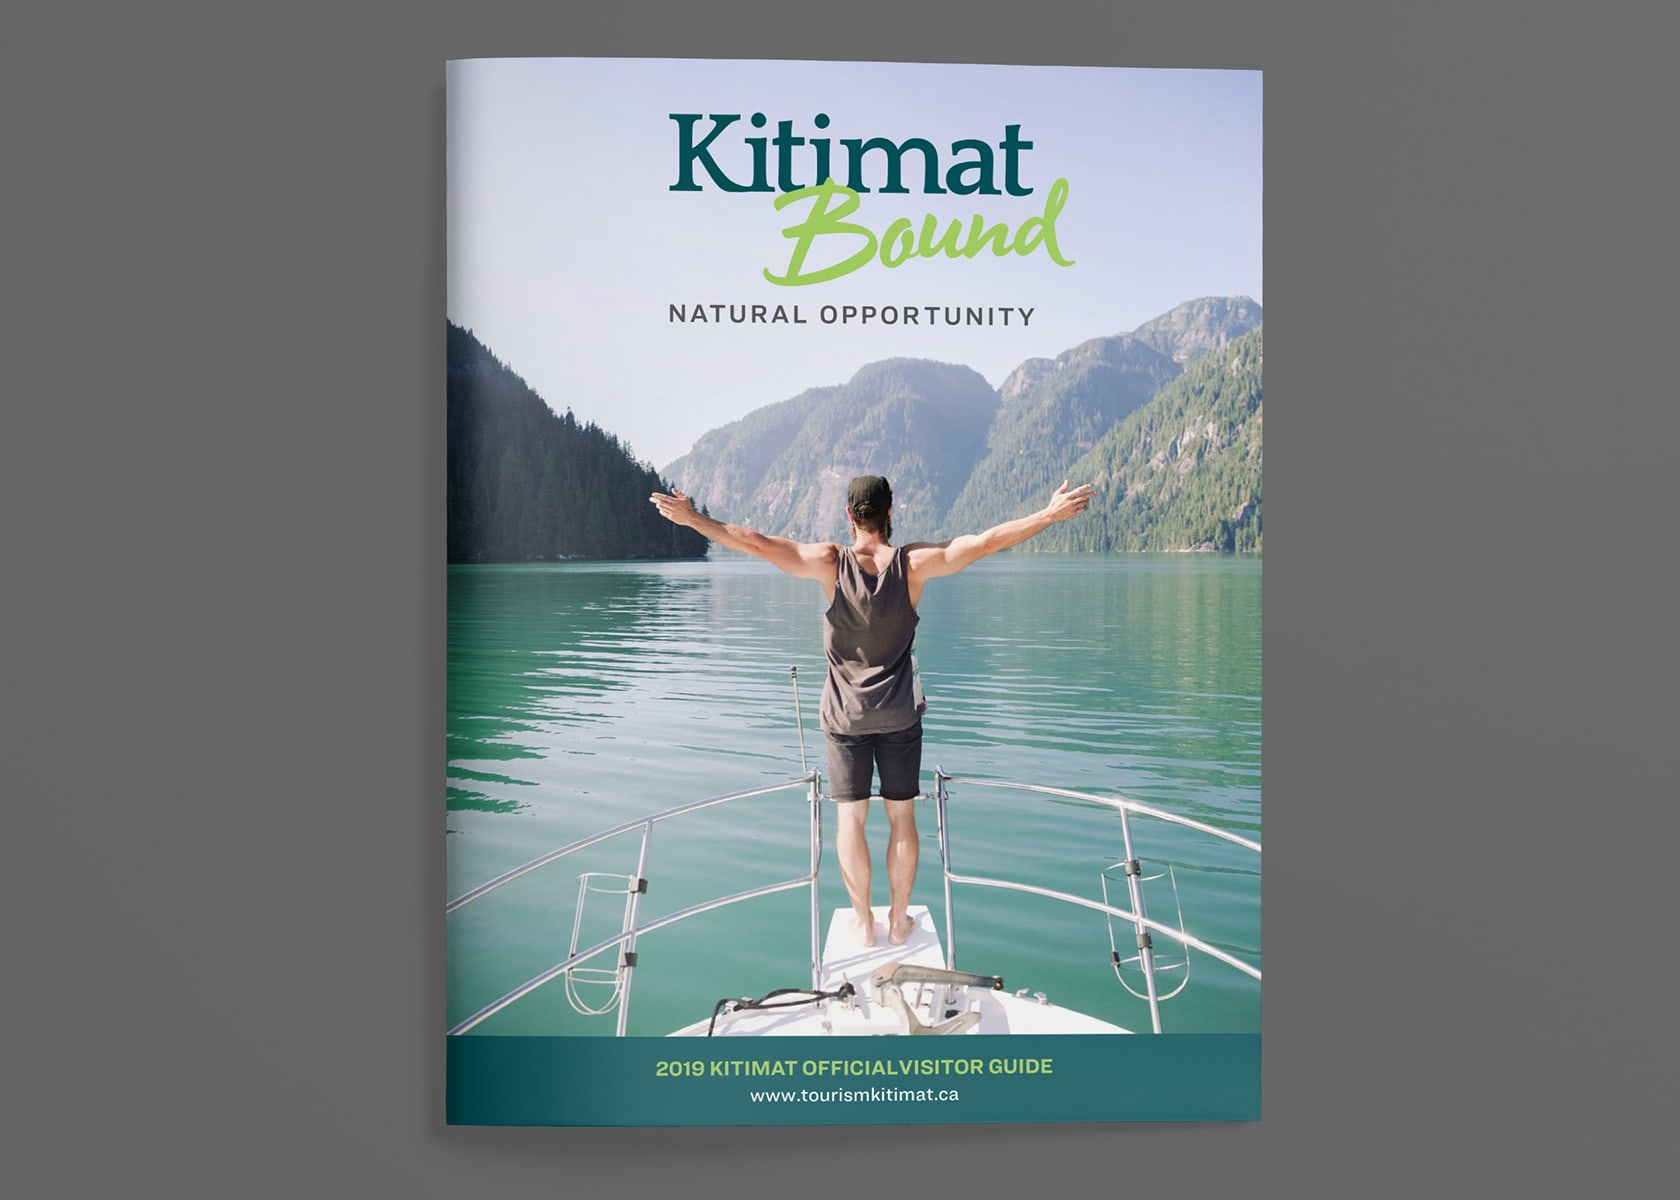 District of Kitimat - Kitimat Bound 2019 Visitors Guide cover